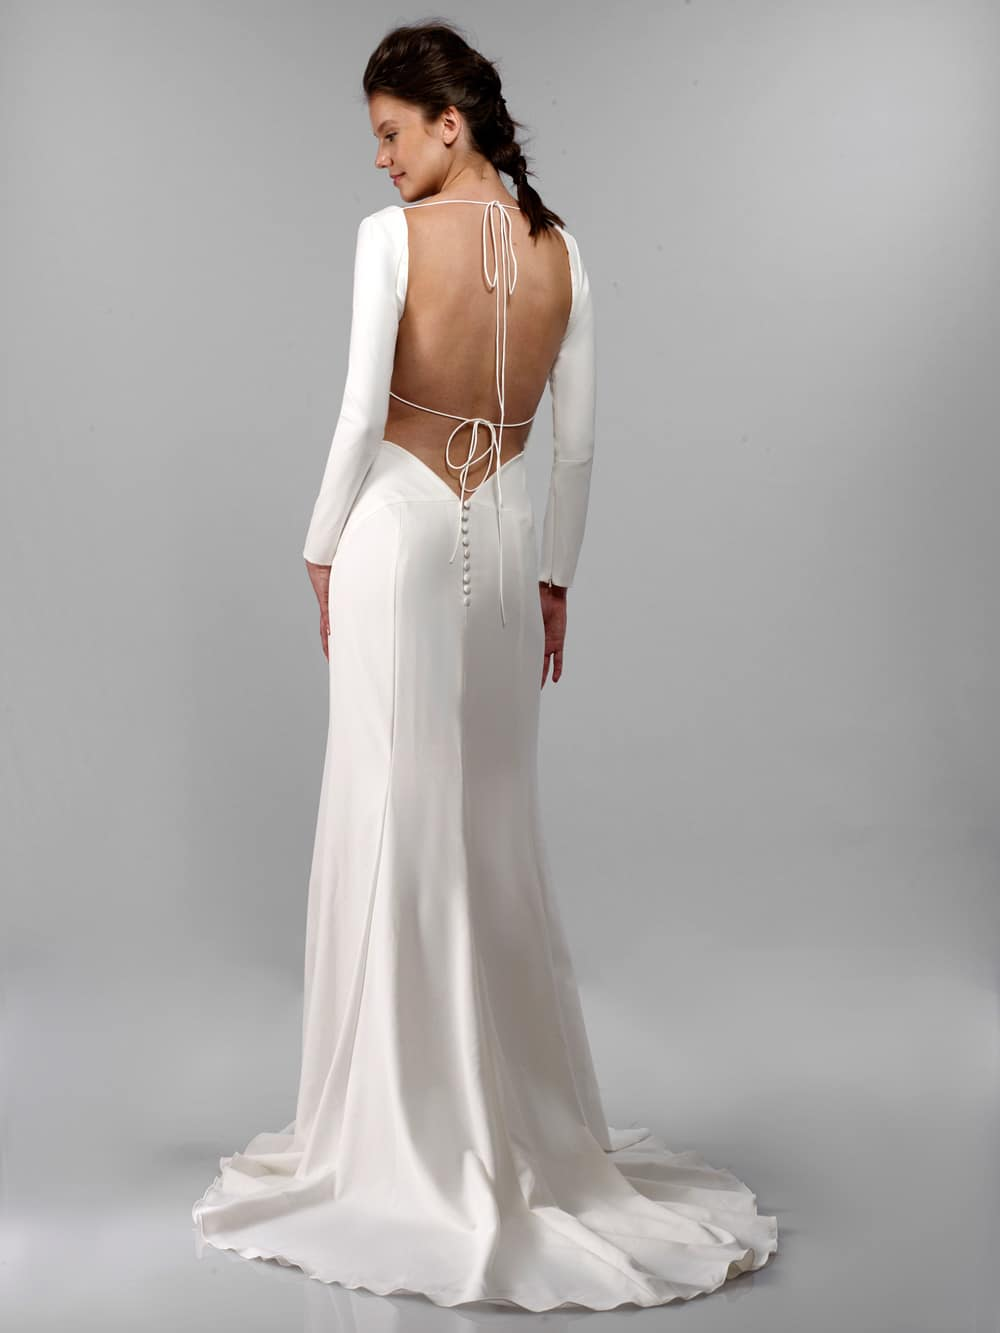 Antonio Gual 'Killian' size 2 new wedding dress back view on model